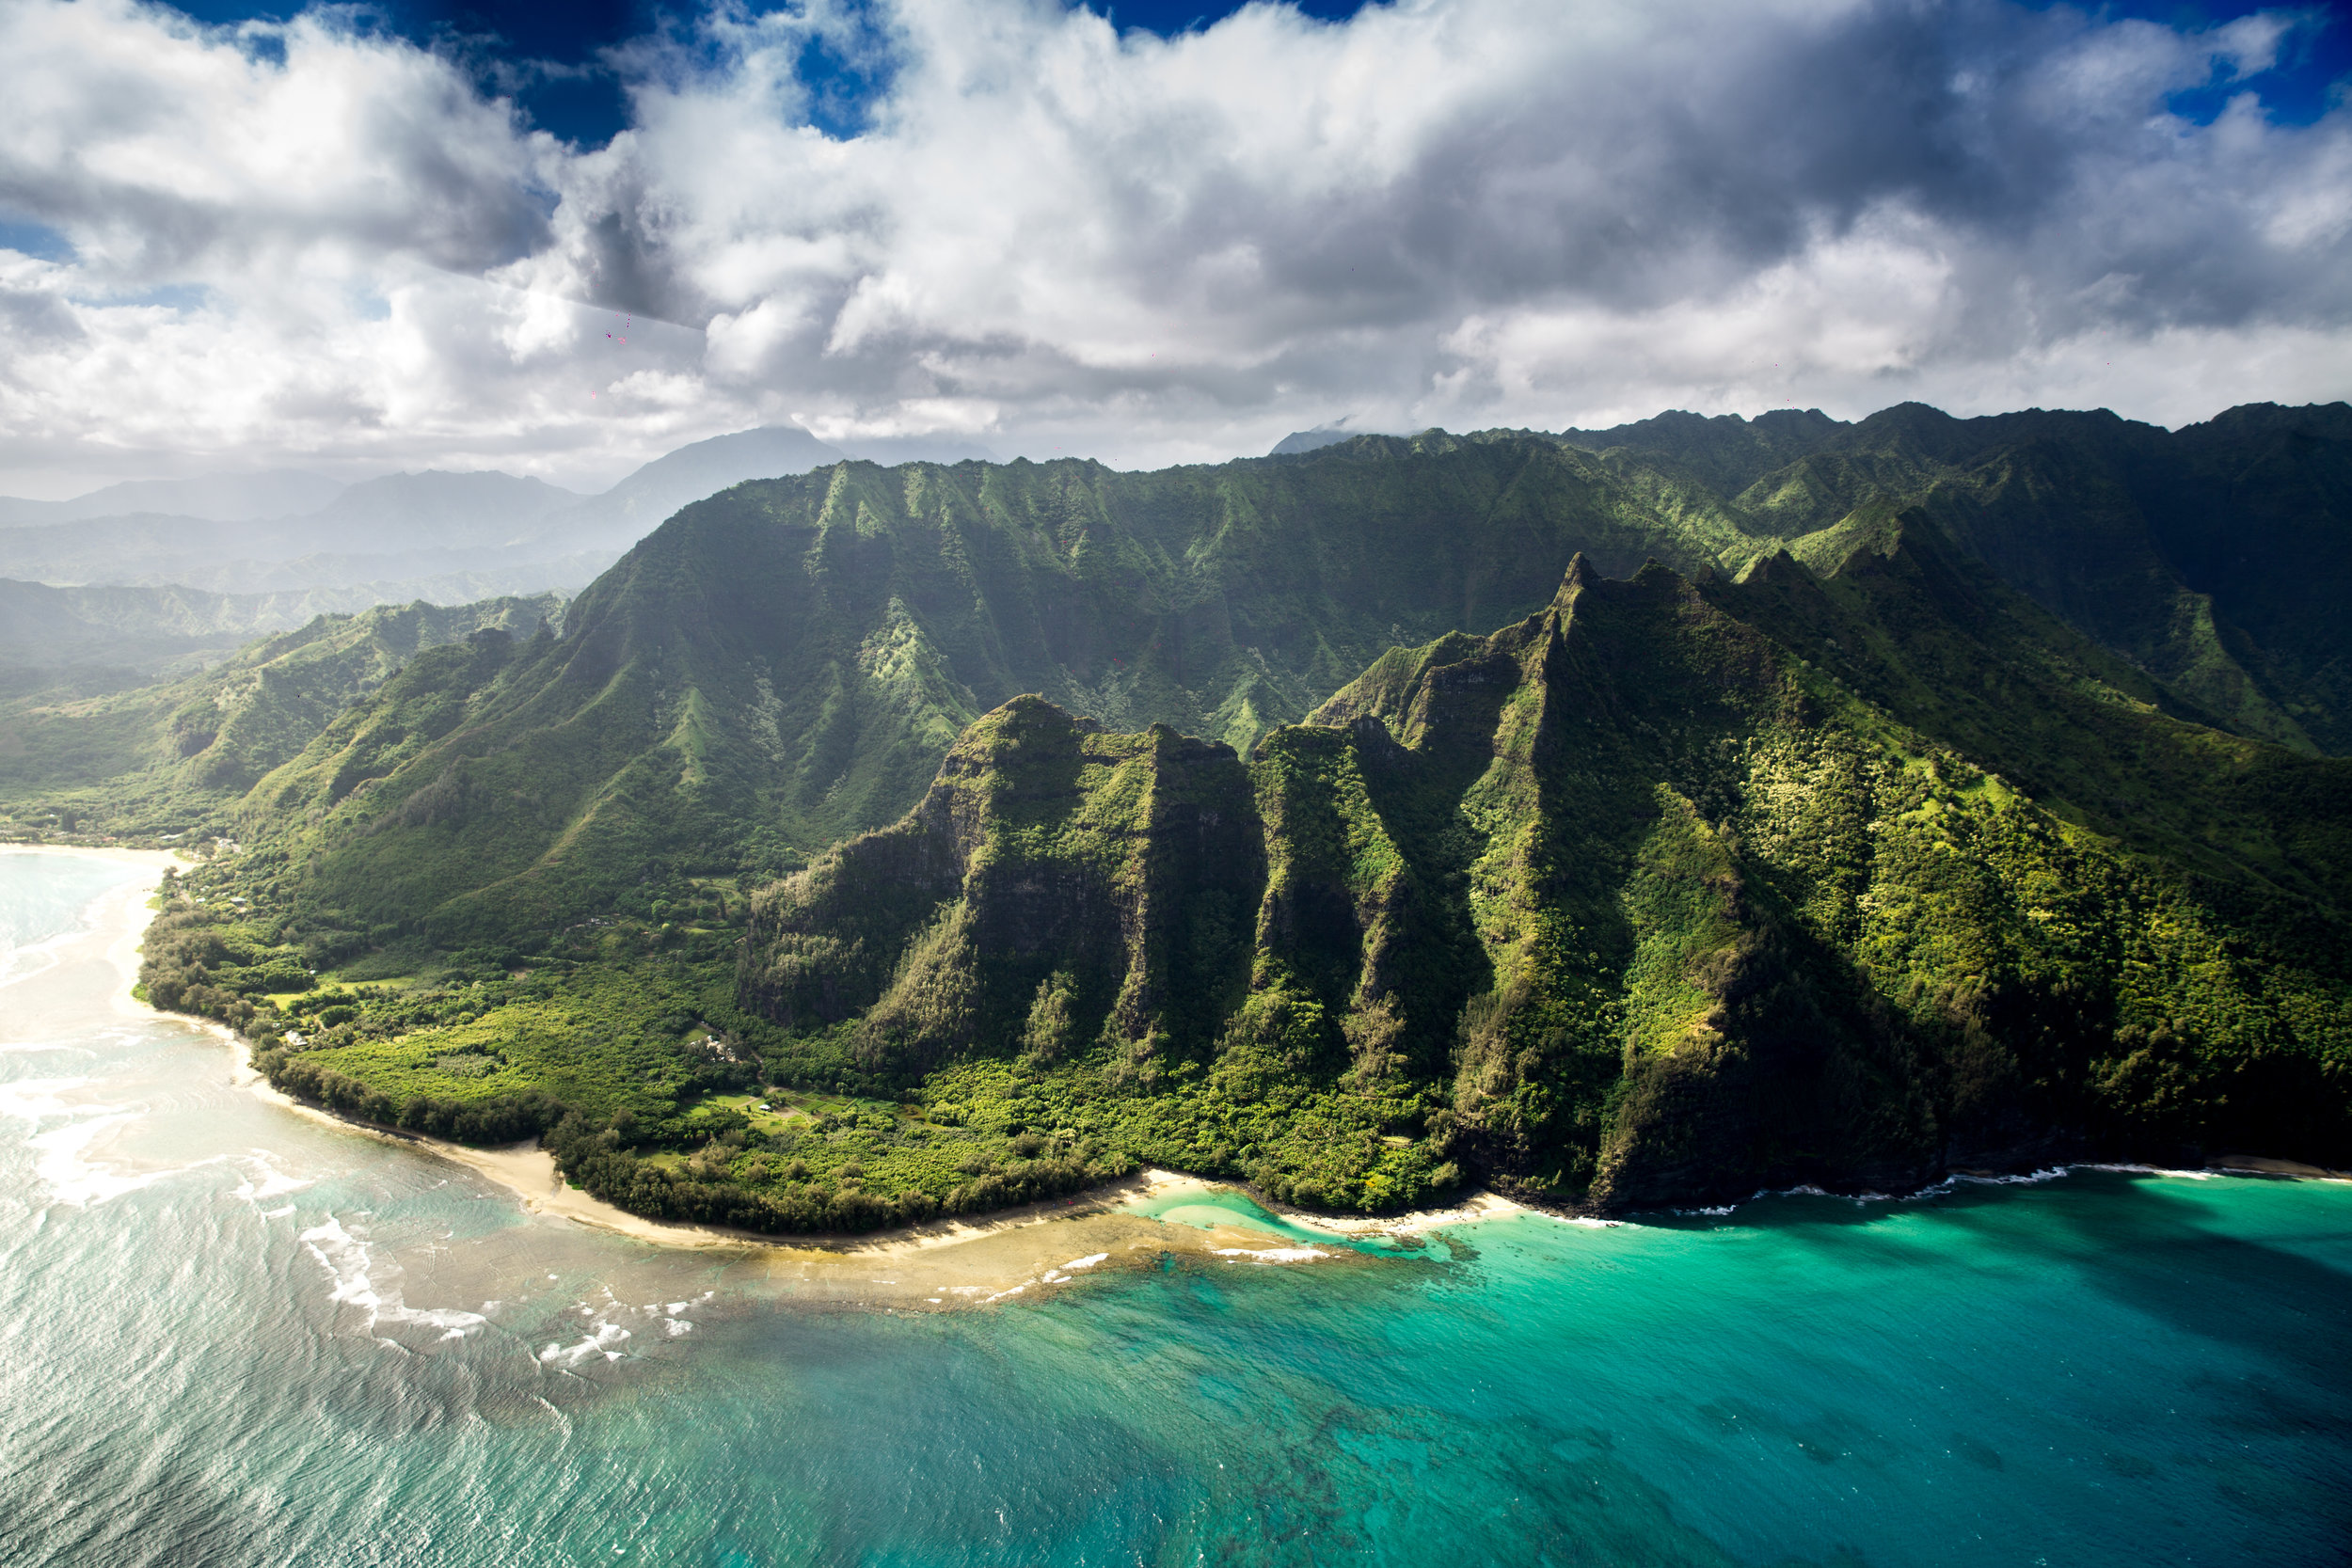 Hawaii - Sustainable solutions for long-term economic recovery and resiliency.